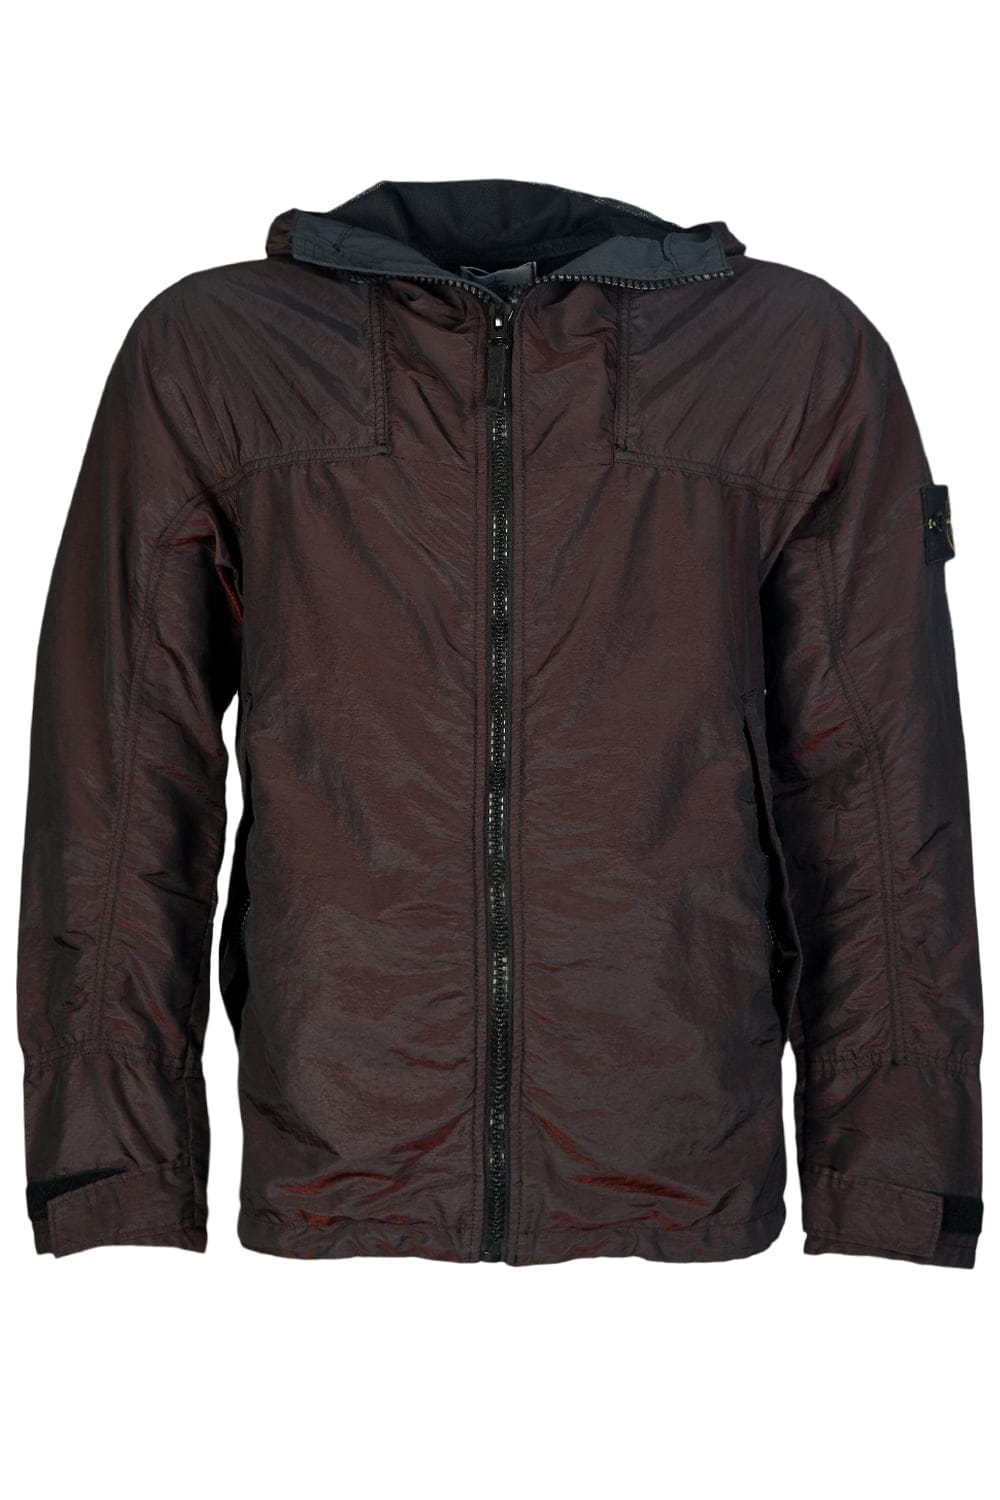 stone island jacket 641544448 clothing from sage clothing uk. Black Bedroom Furniture Sets. Home Design Ideas